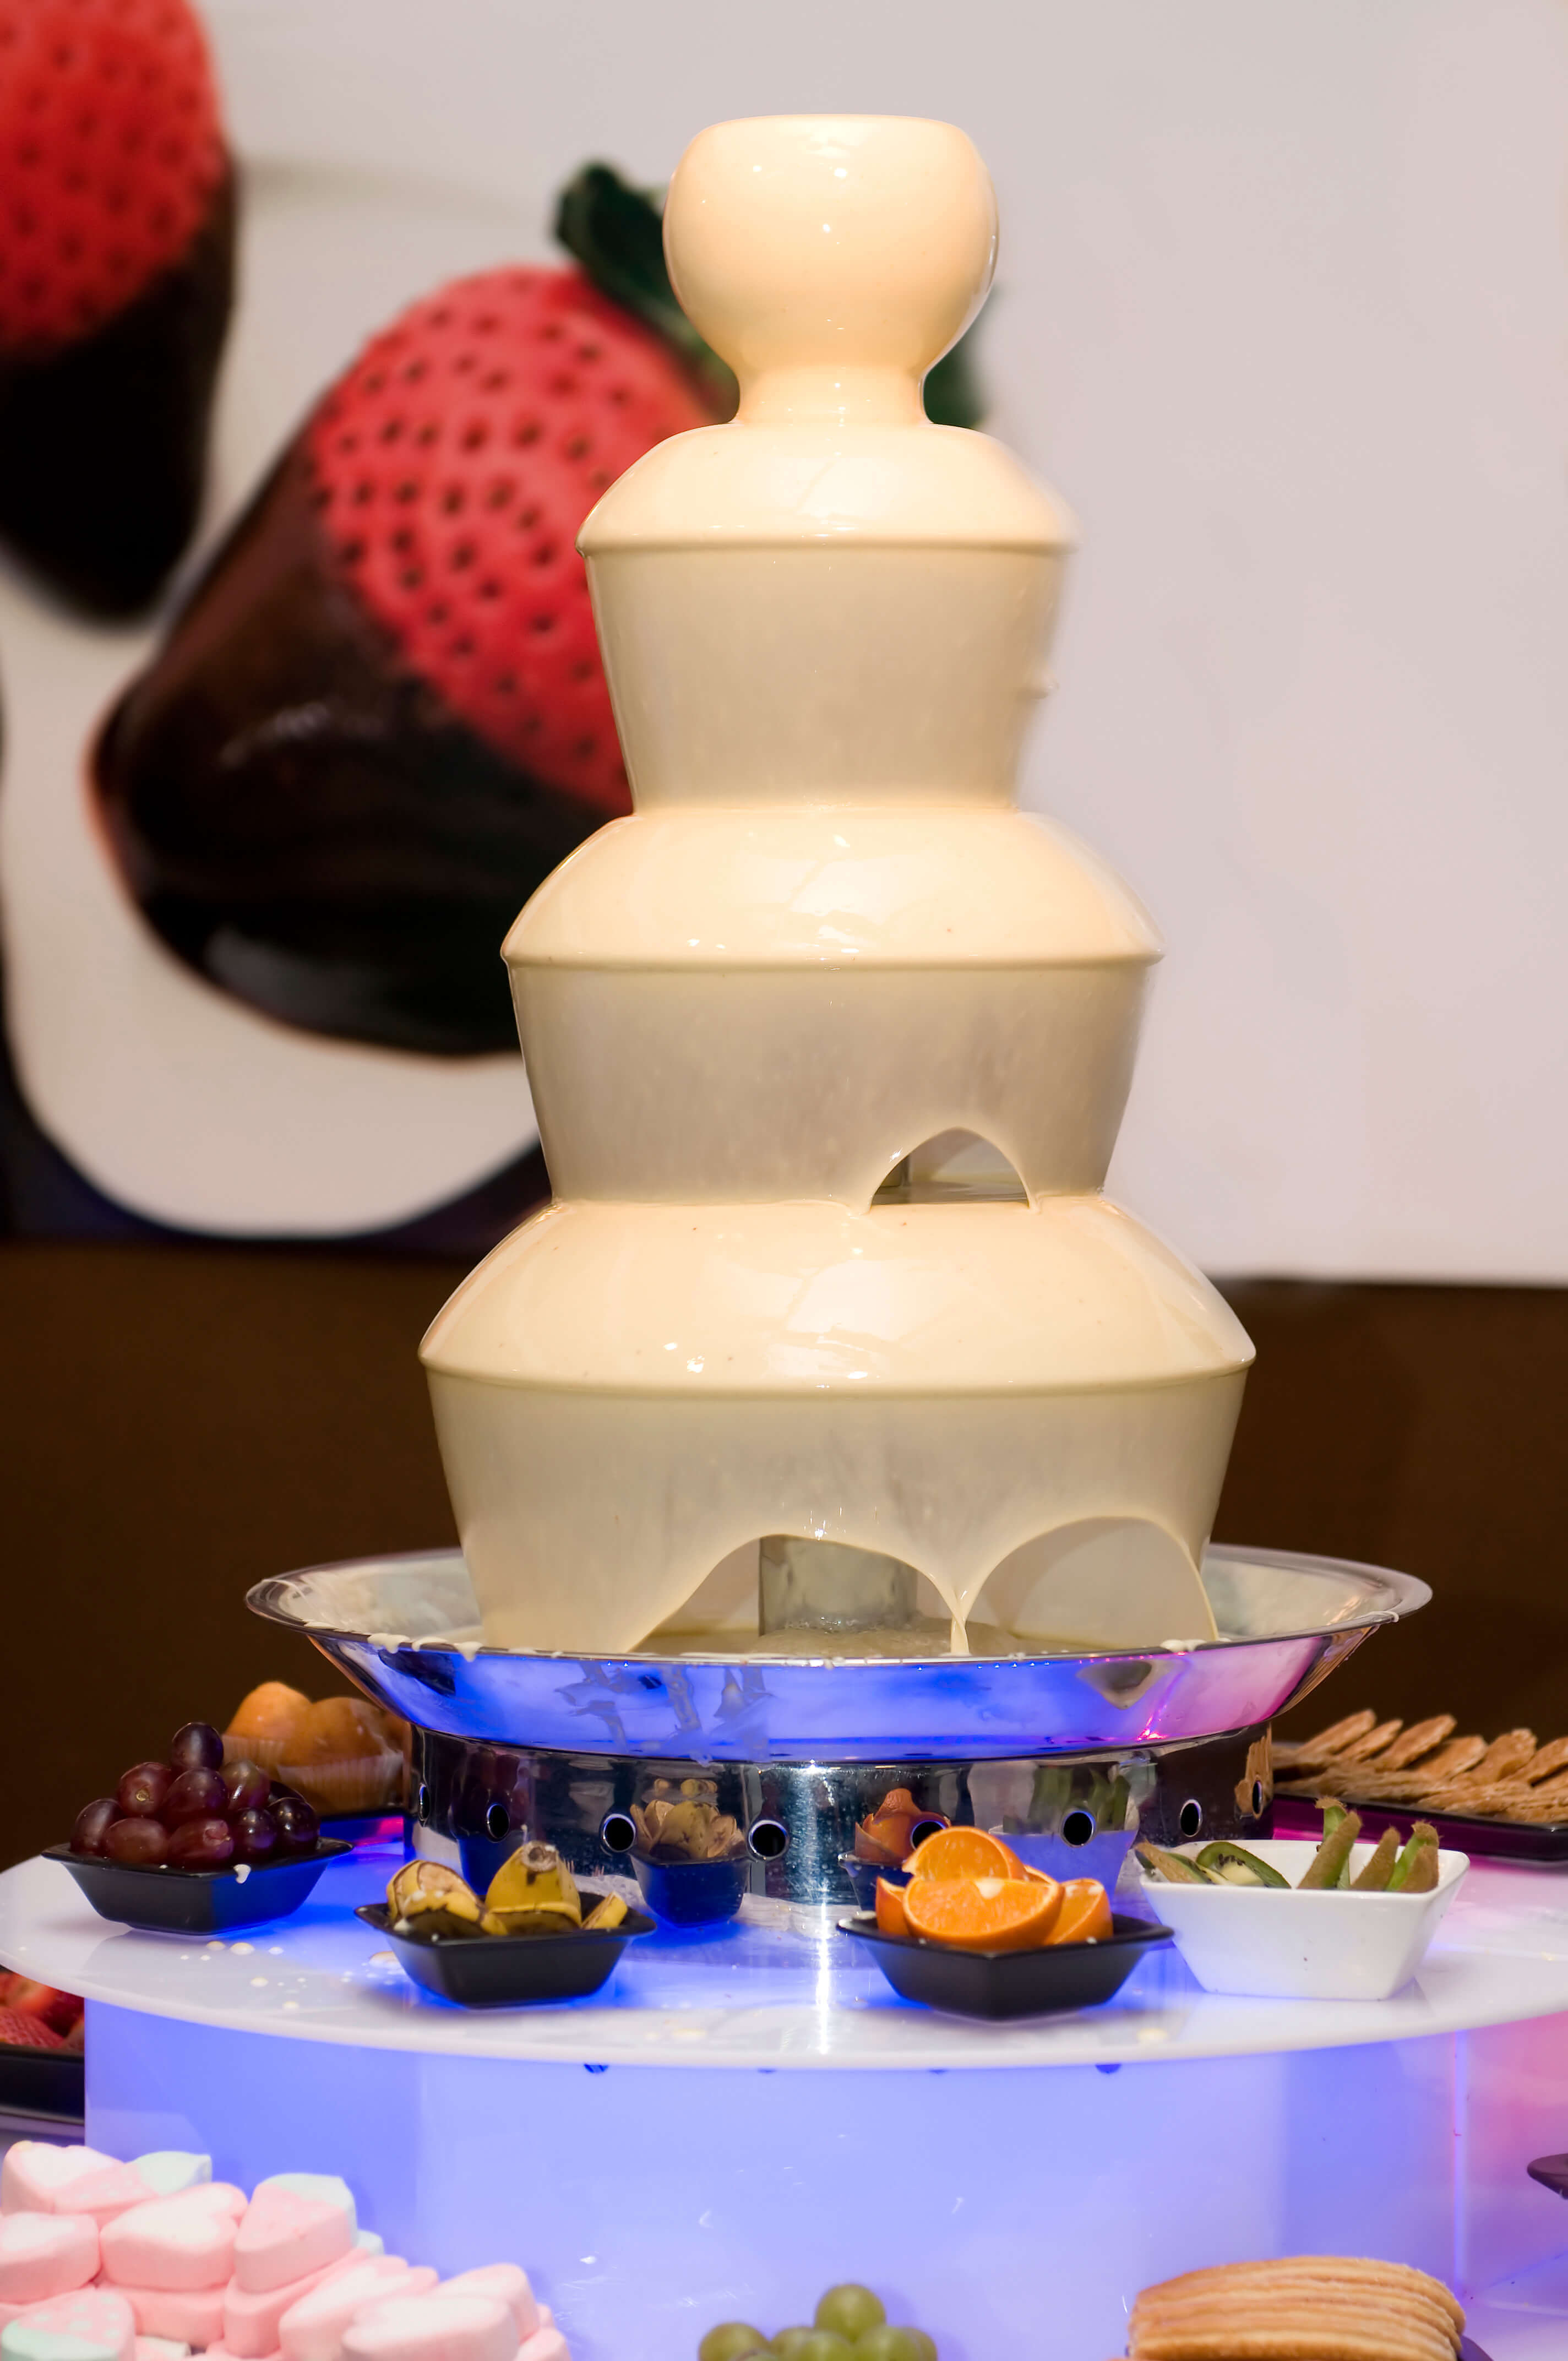 Chocolate Fountain Rental London - Pure Belgian Chocolate and ...